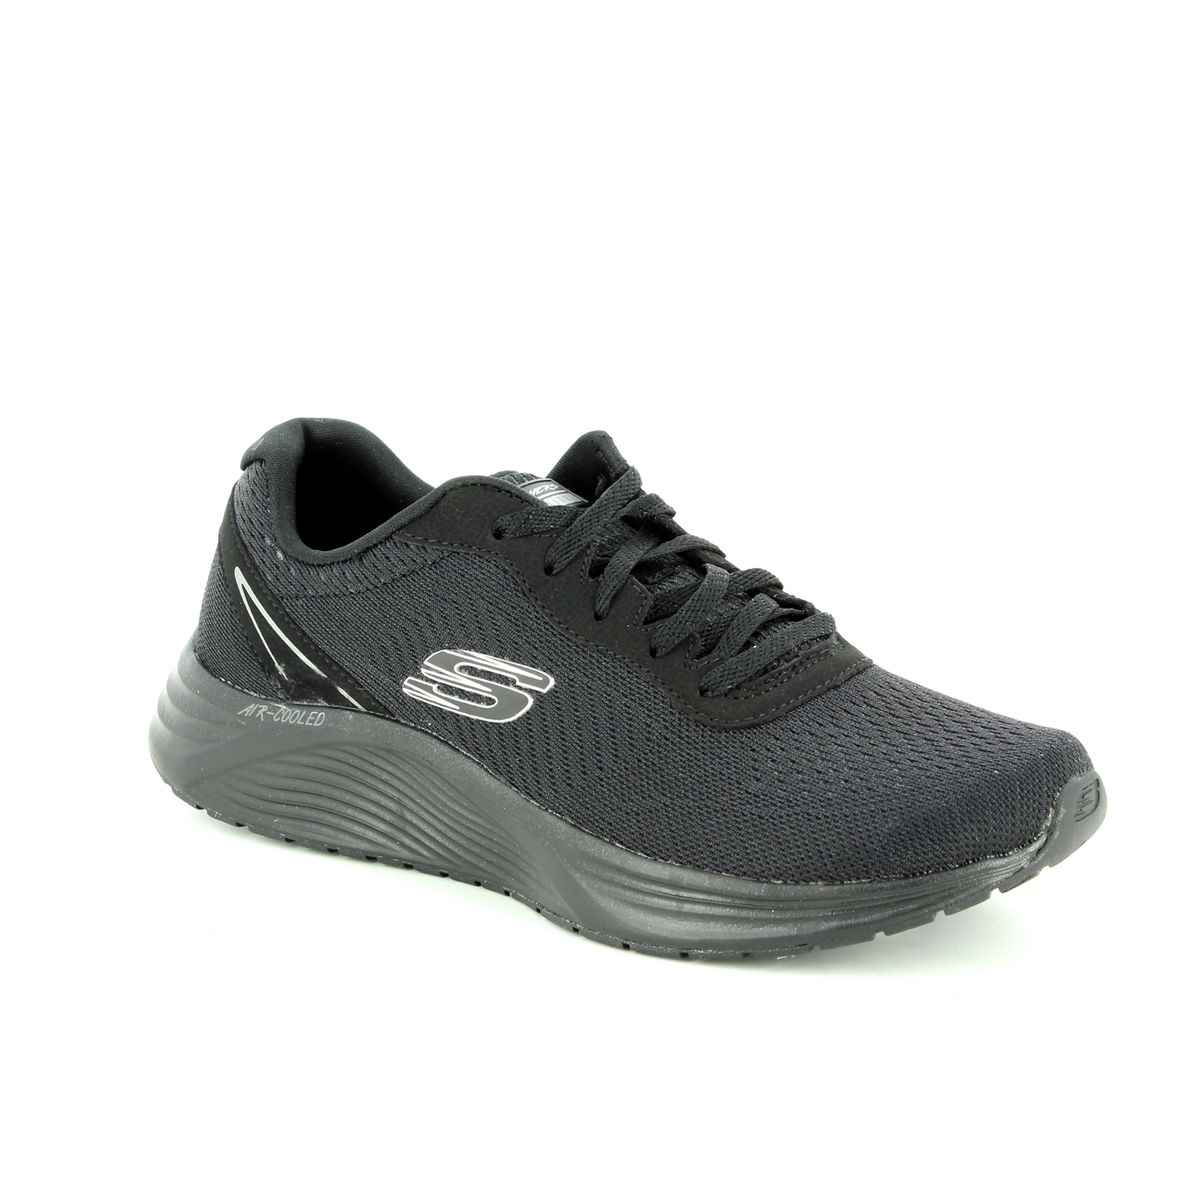 a515a81f896 Skechers Skyline 13047 BBK Black trainers